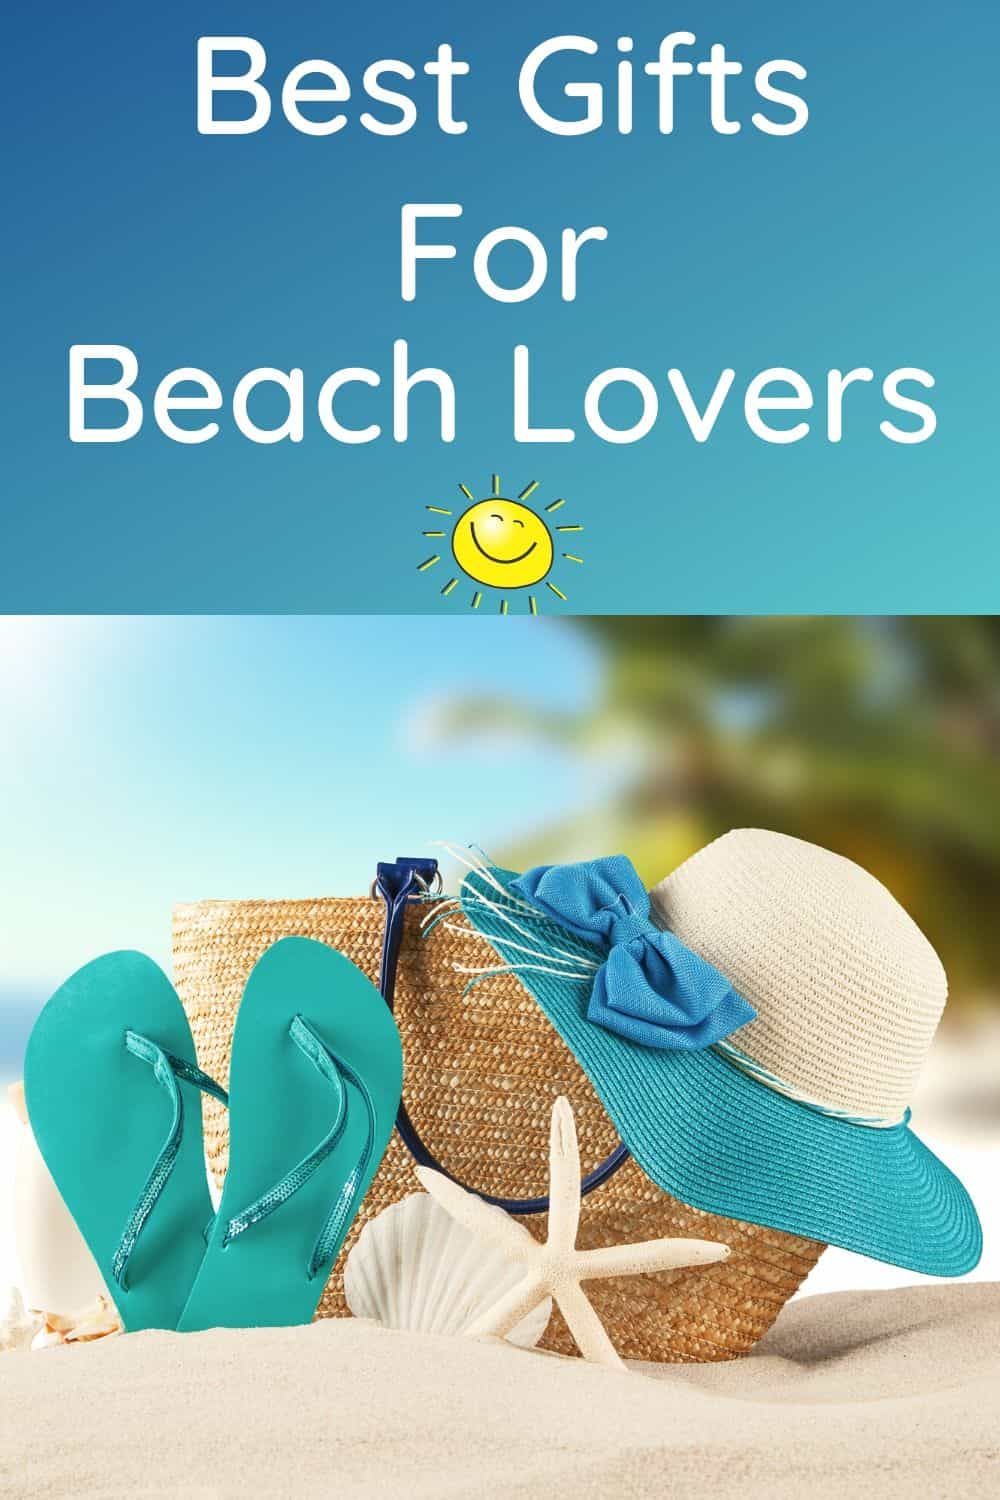 Gifts for Beach Lovers - Beach Gift Ideas